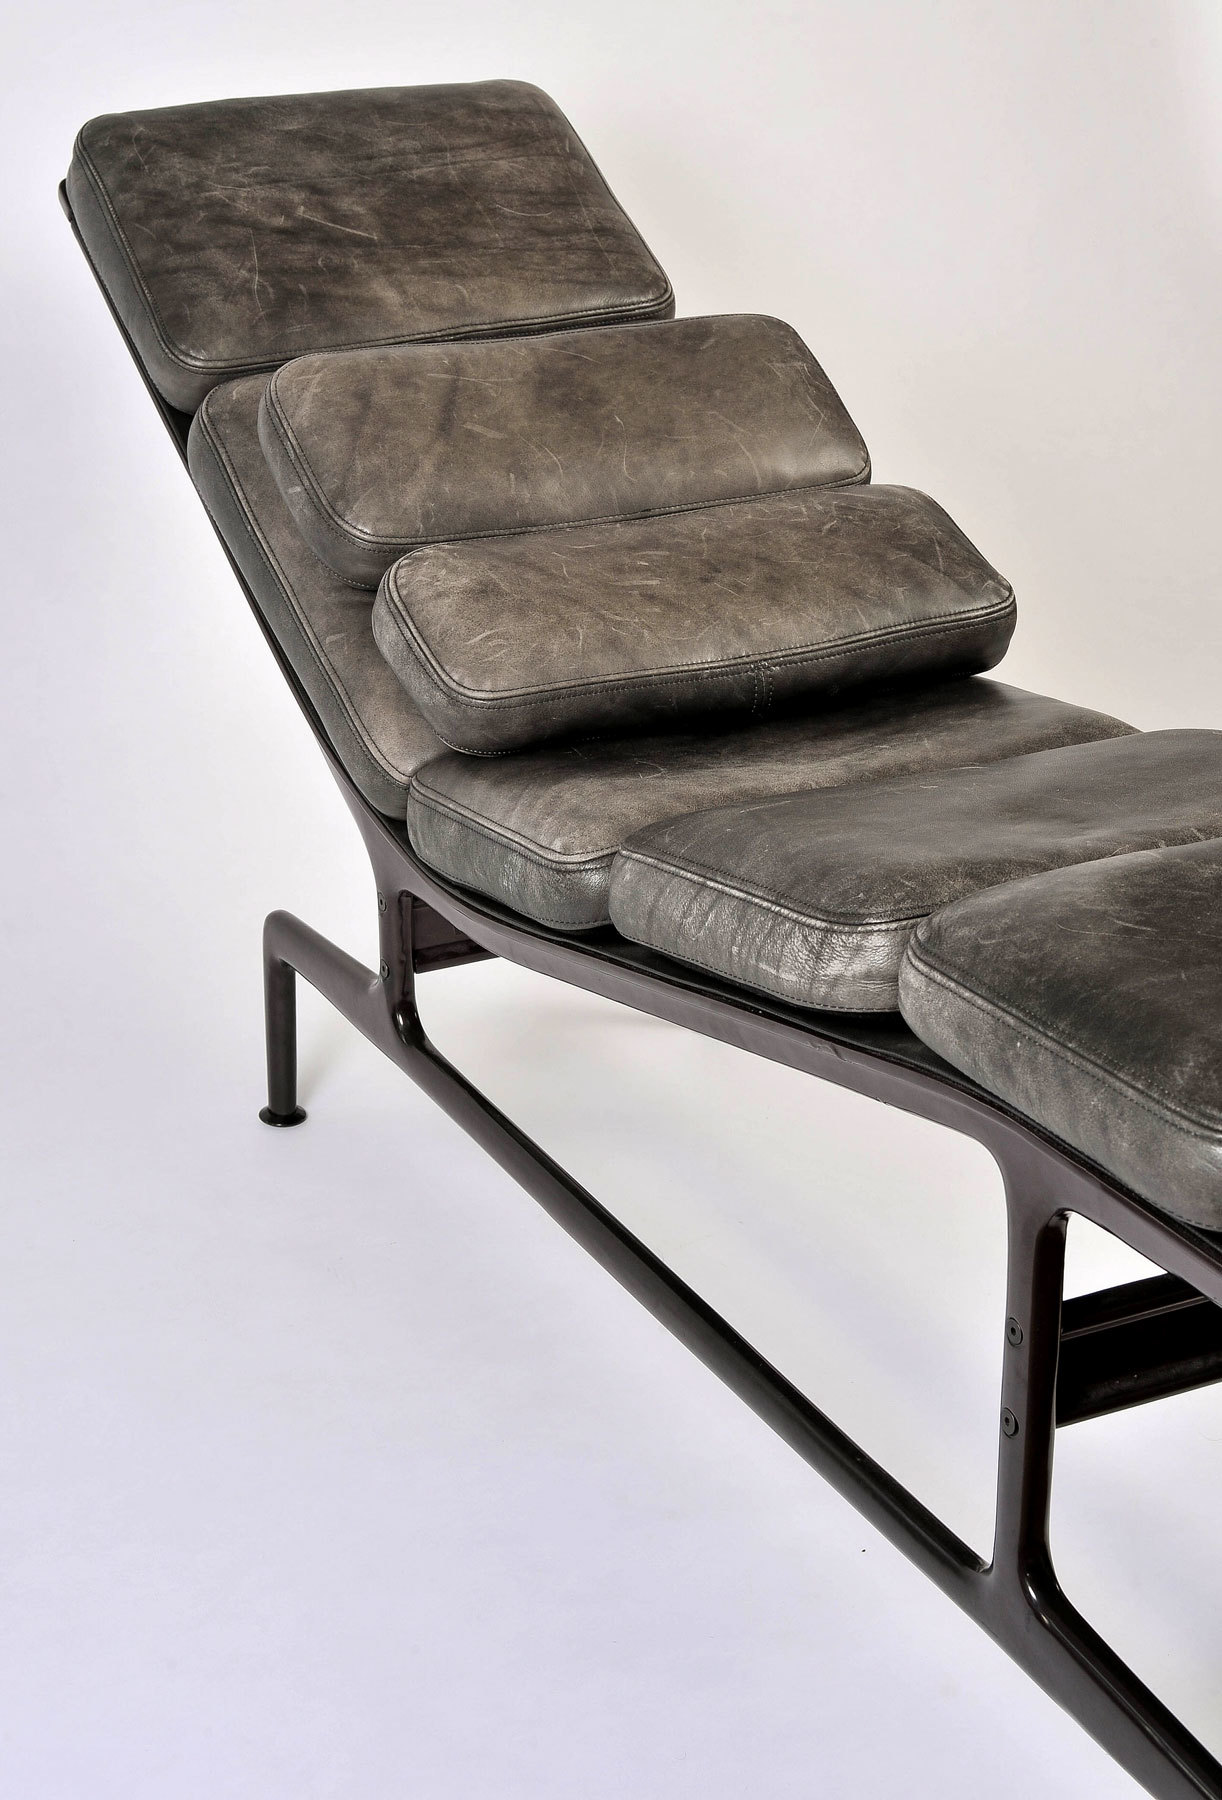 The image for Eamaes Chaise Longue 06